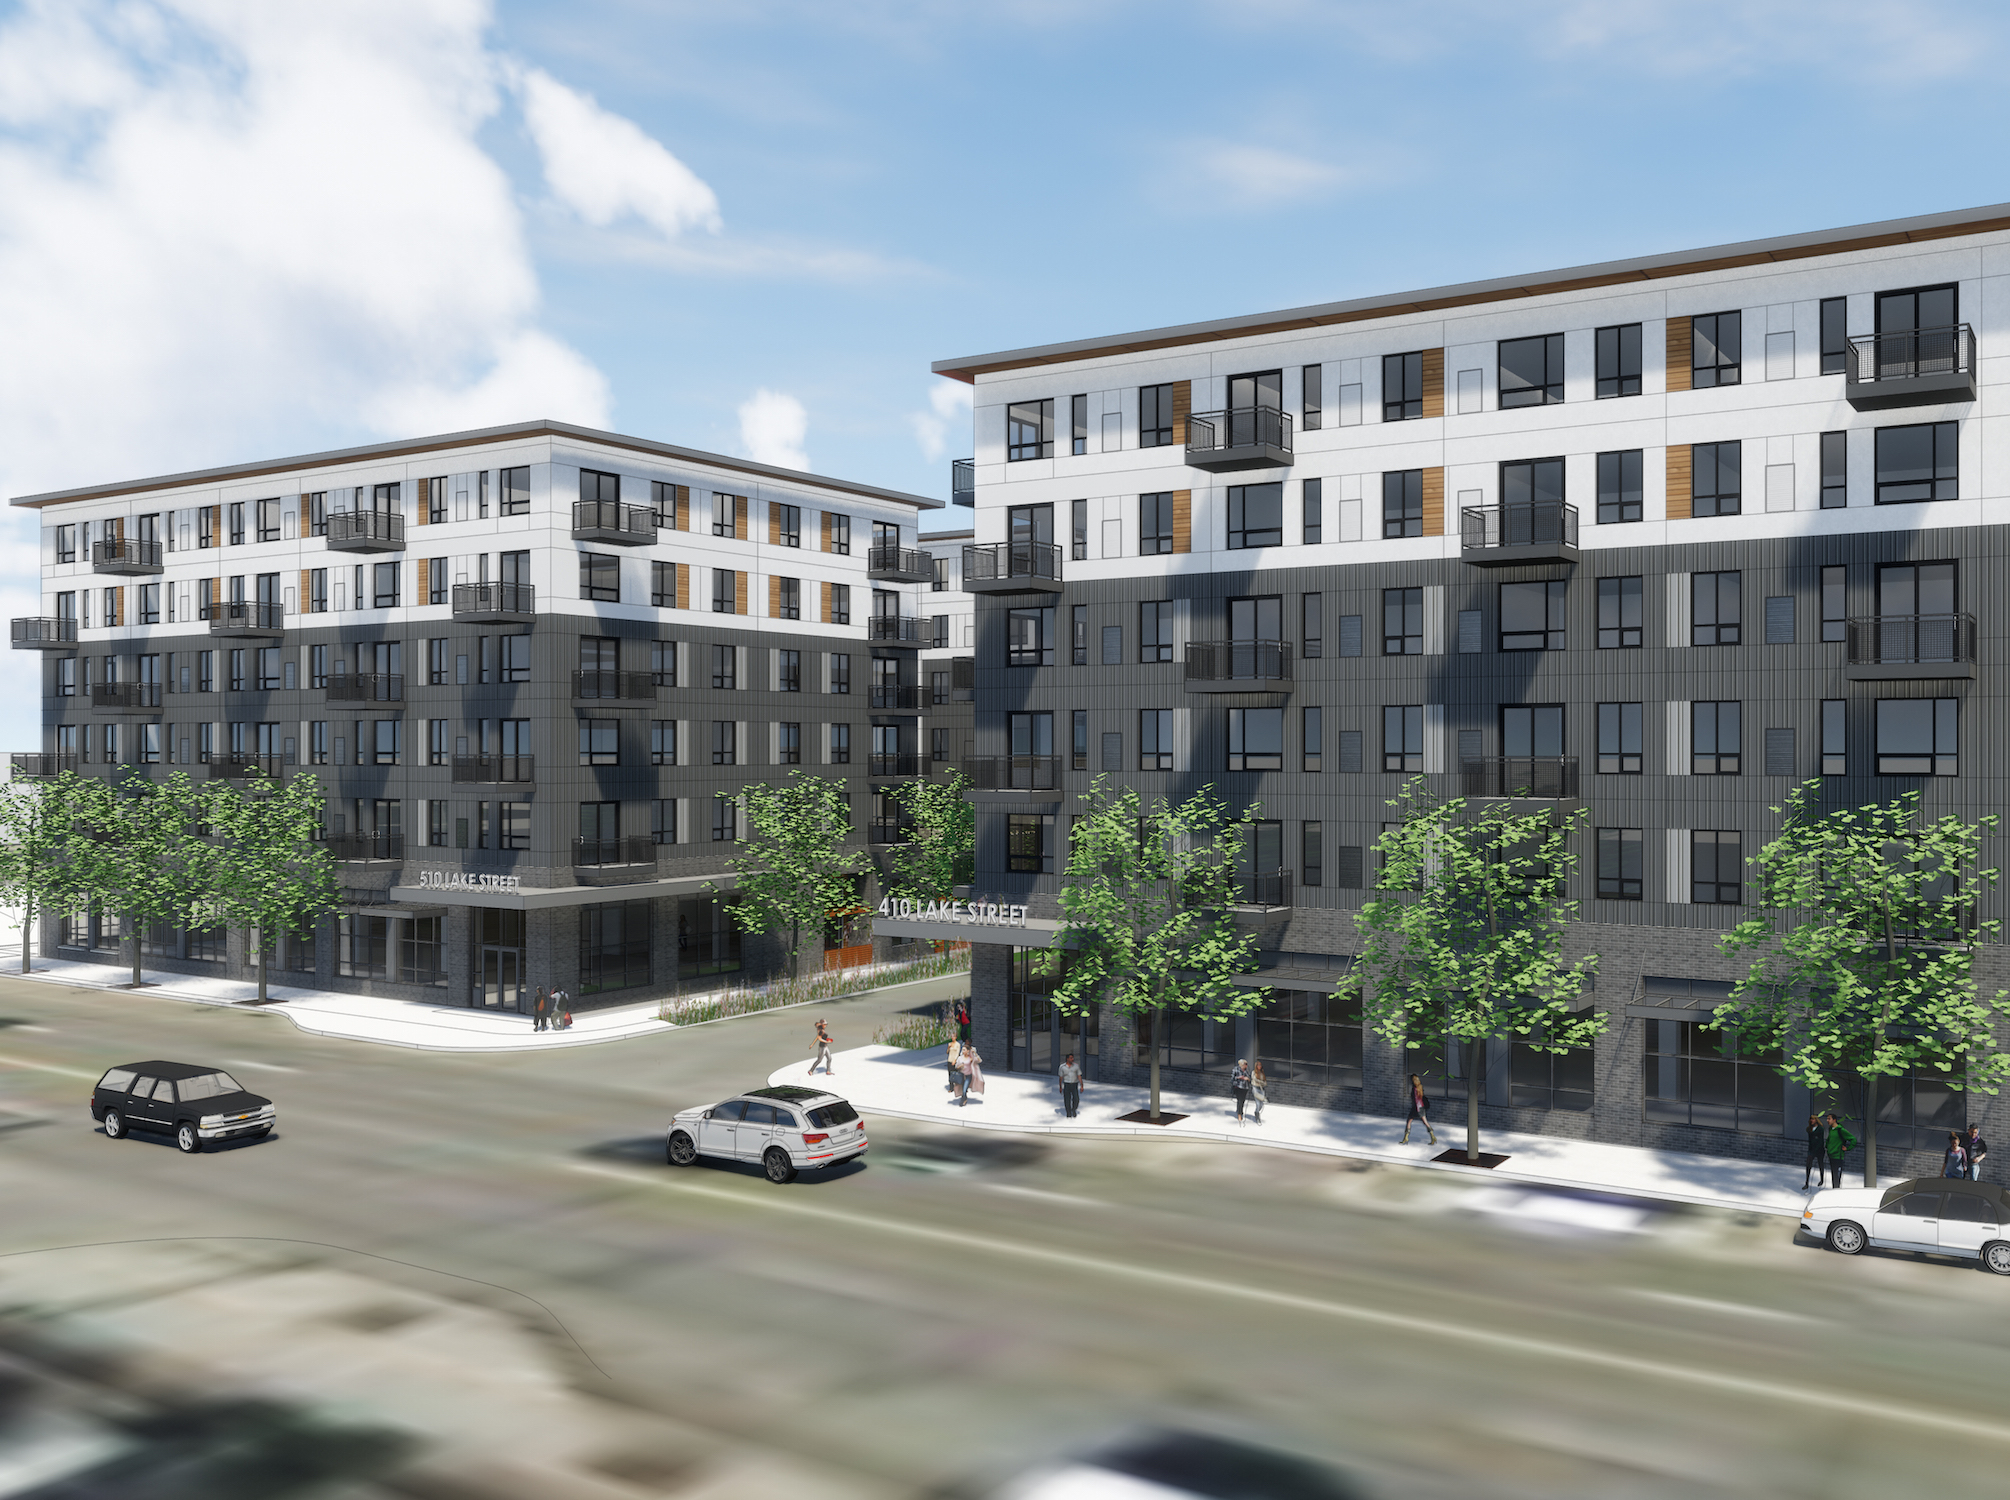 Lupe Development Partners is planning to build two six-story, 111-unit apartment buildings on Lake Street two blocks east of the Lake & Lyndale intersection. Rendering courtesy Lupe Development Partners